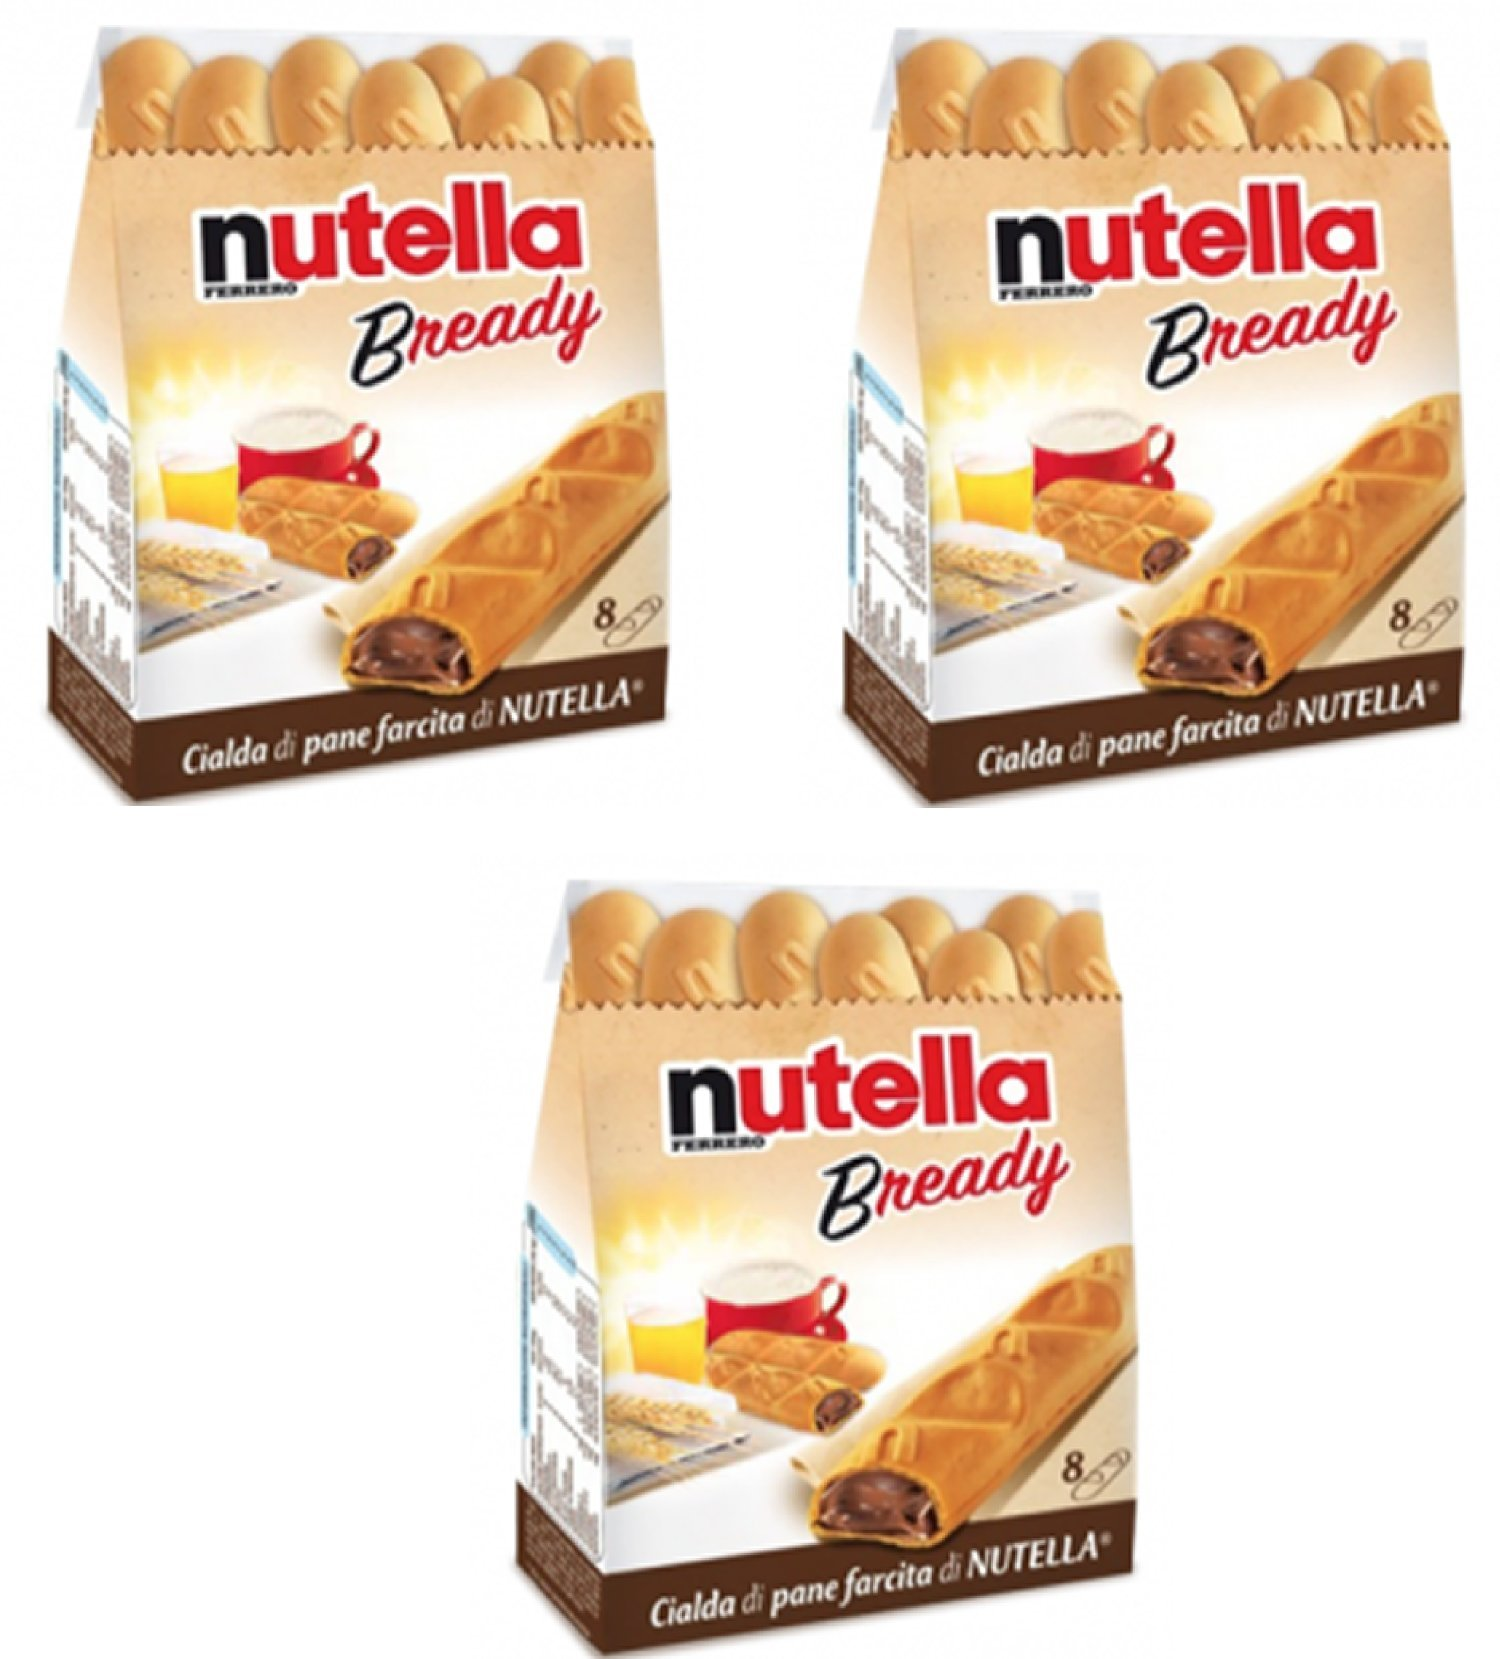 """Ferrero: """"Nutella B-ready """" a crisp wafer of bread in the form of mini - baguette stuffed with a creamy Nutella 8 pieces 5.39 oz (153g) Pack of 3 [ Italian Import ]"""